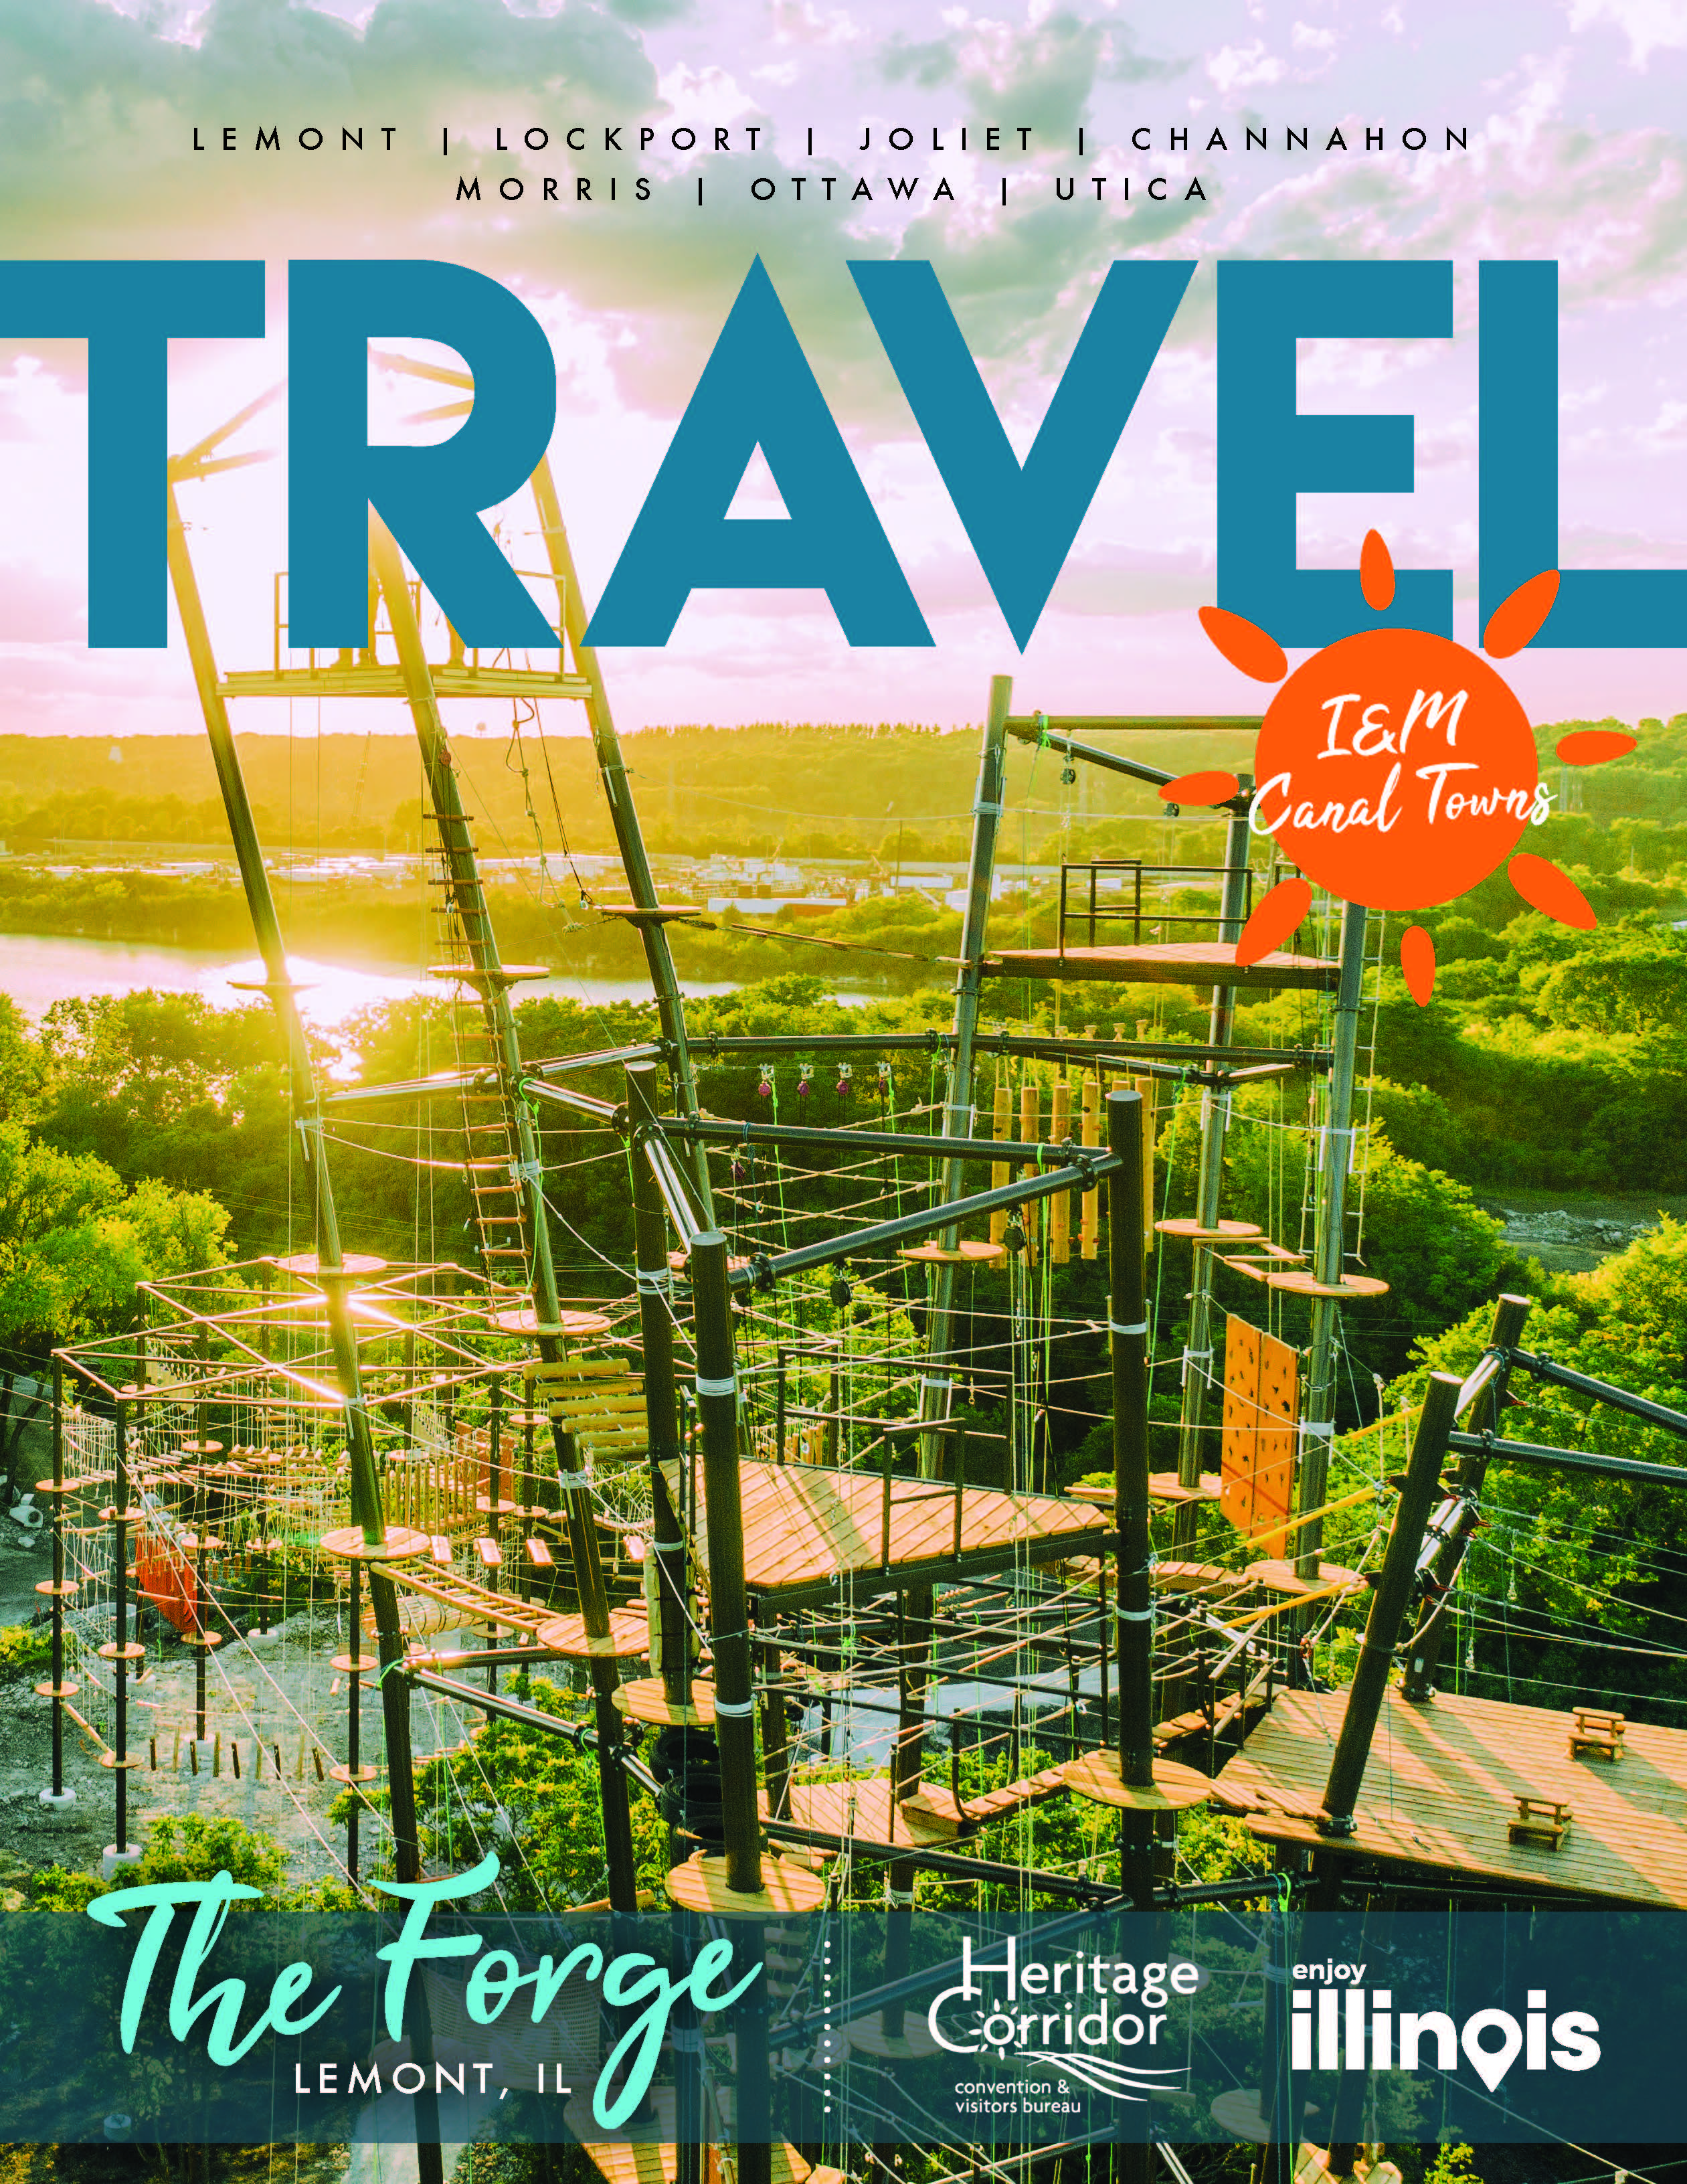 Cover of the 2021 Travel I&M Canal Towns Guide from the Heritage Corridor CVB